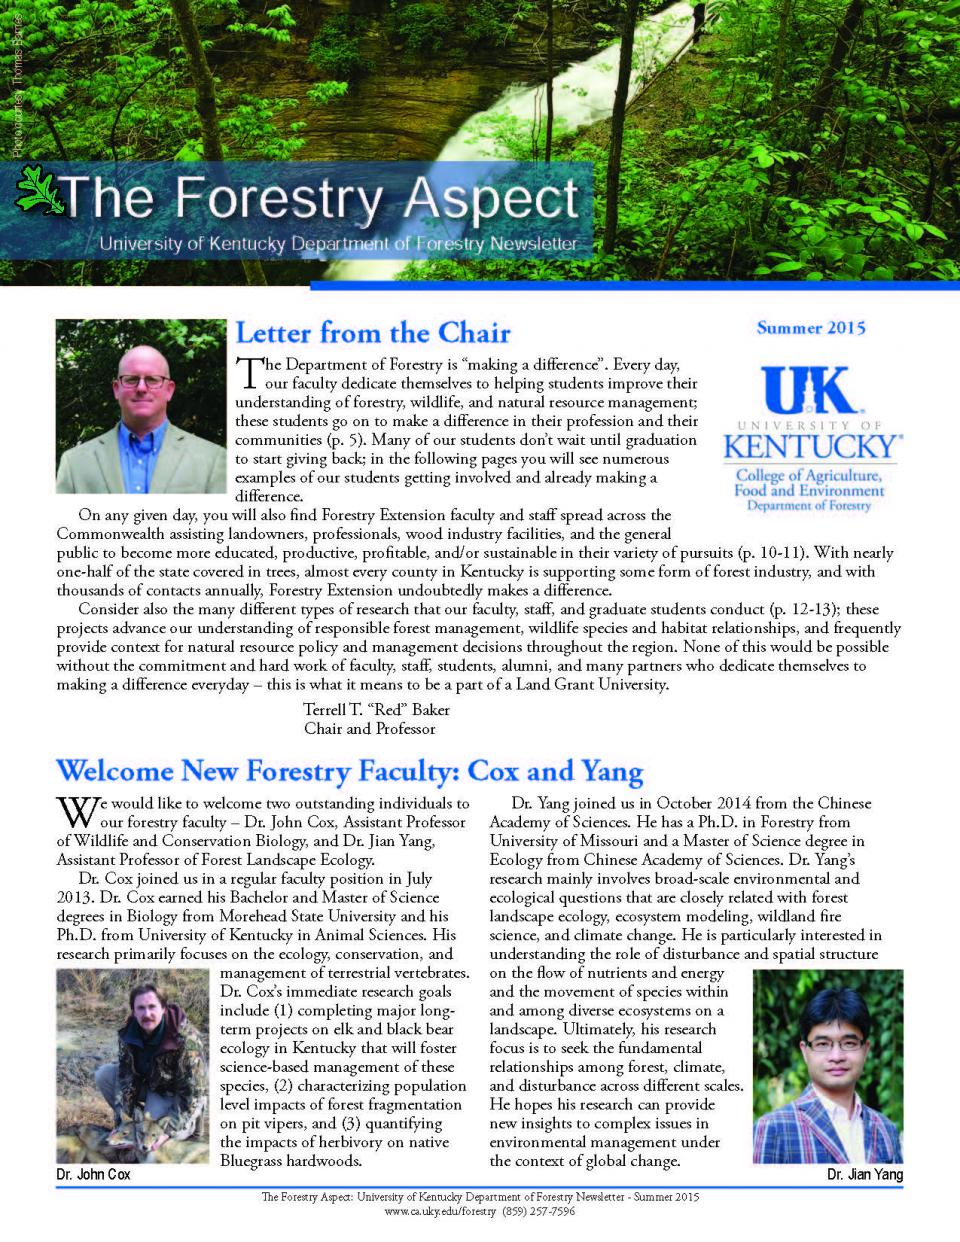 Cover page of the Department Newsletter - Summer 2015